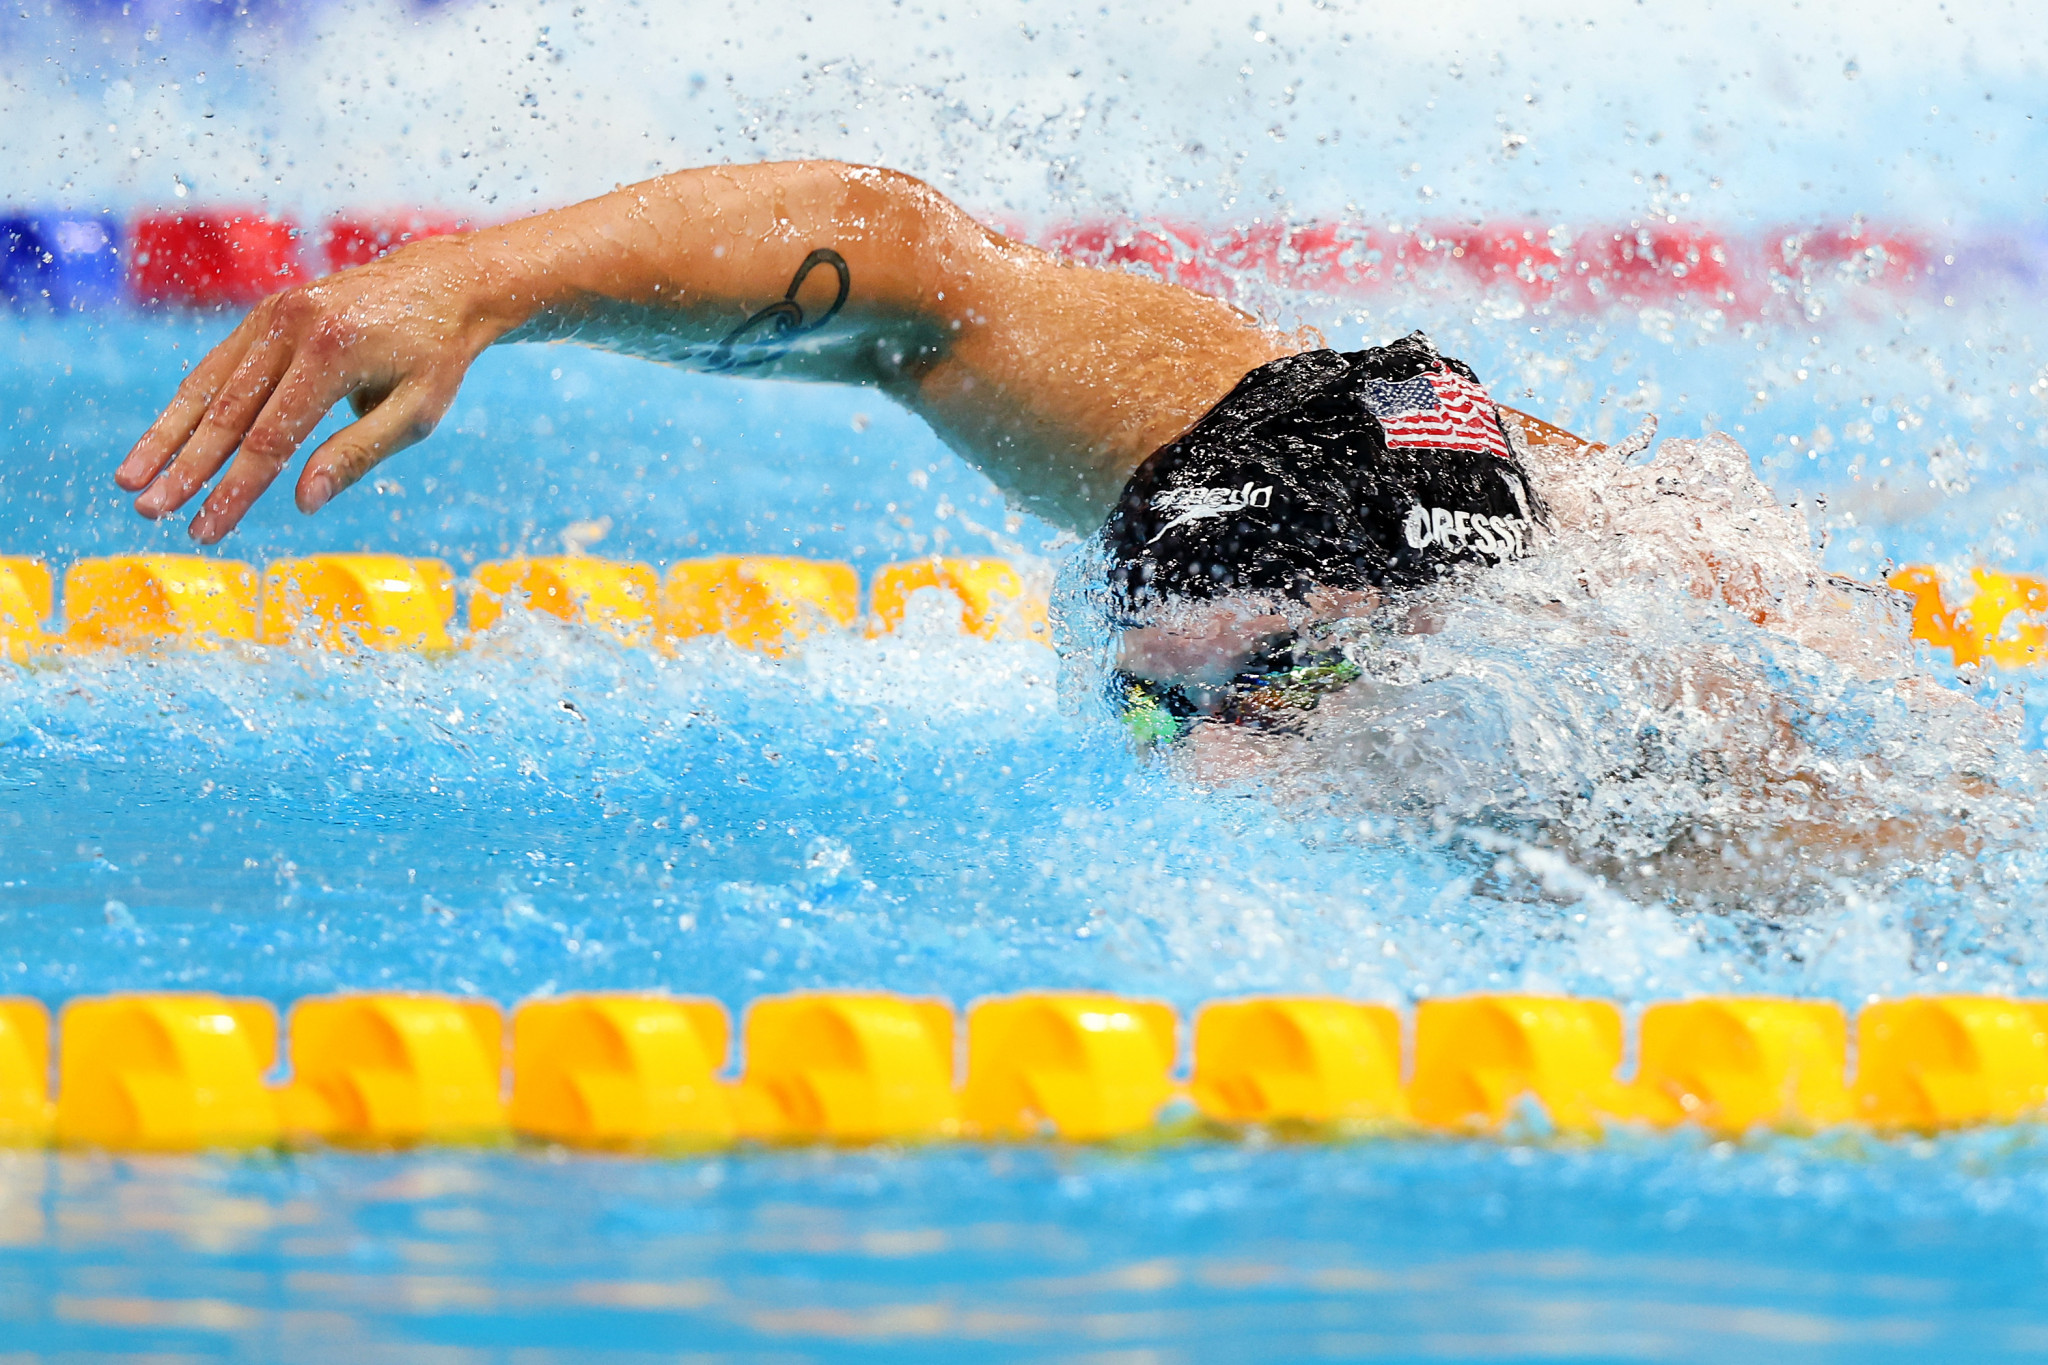 American Caeleb Dressel was another water-based vicor, crowned men's 100m freestyle champion ©Getty Images